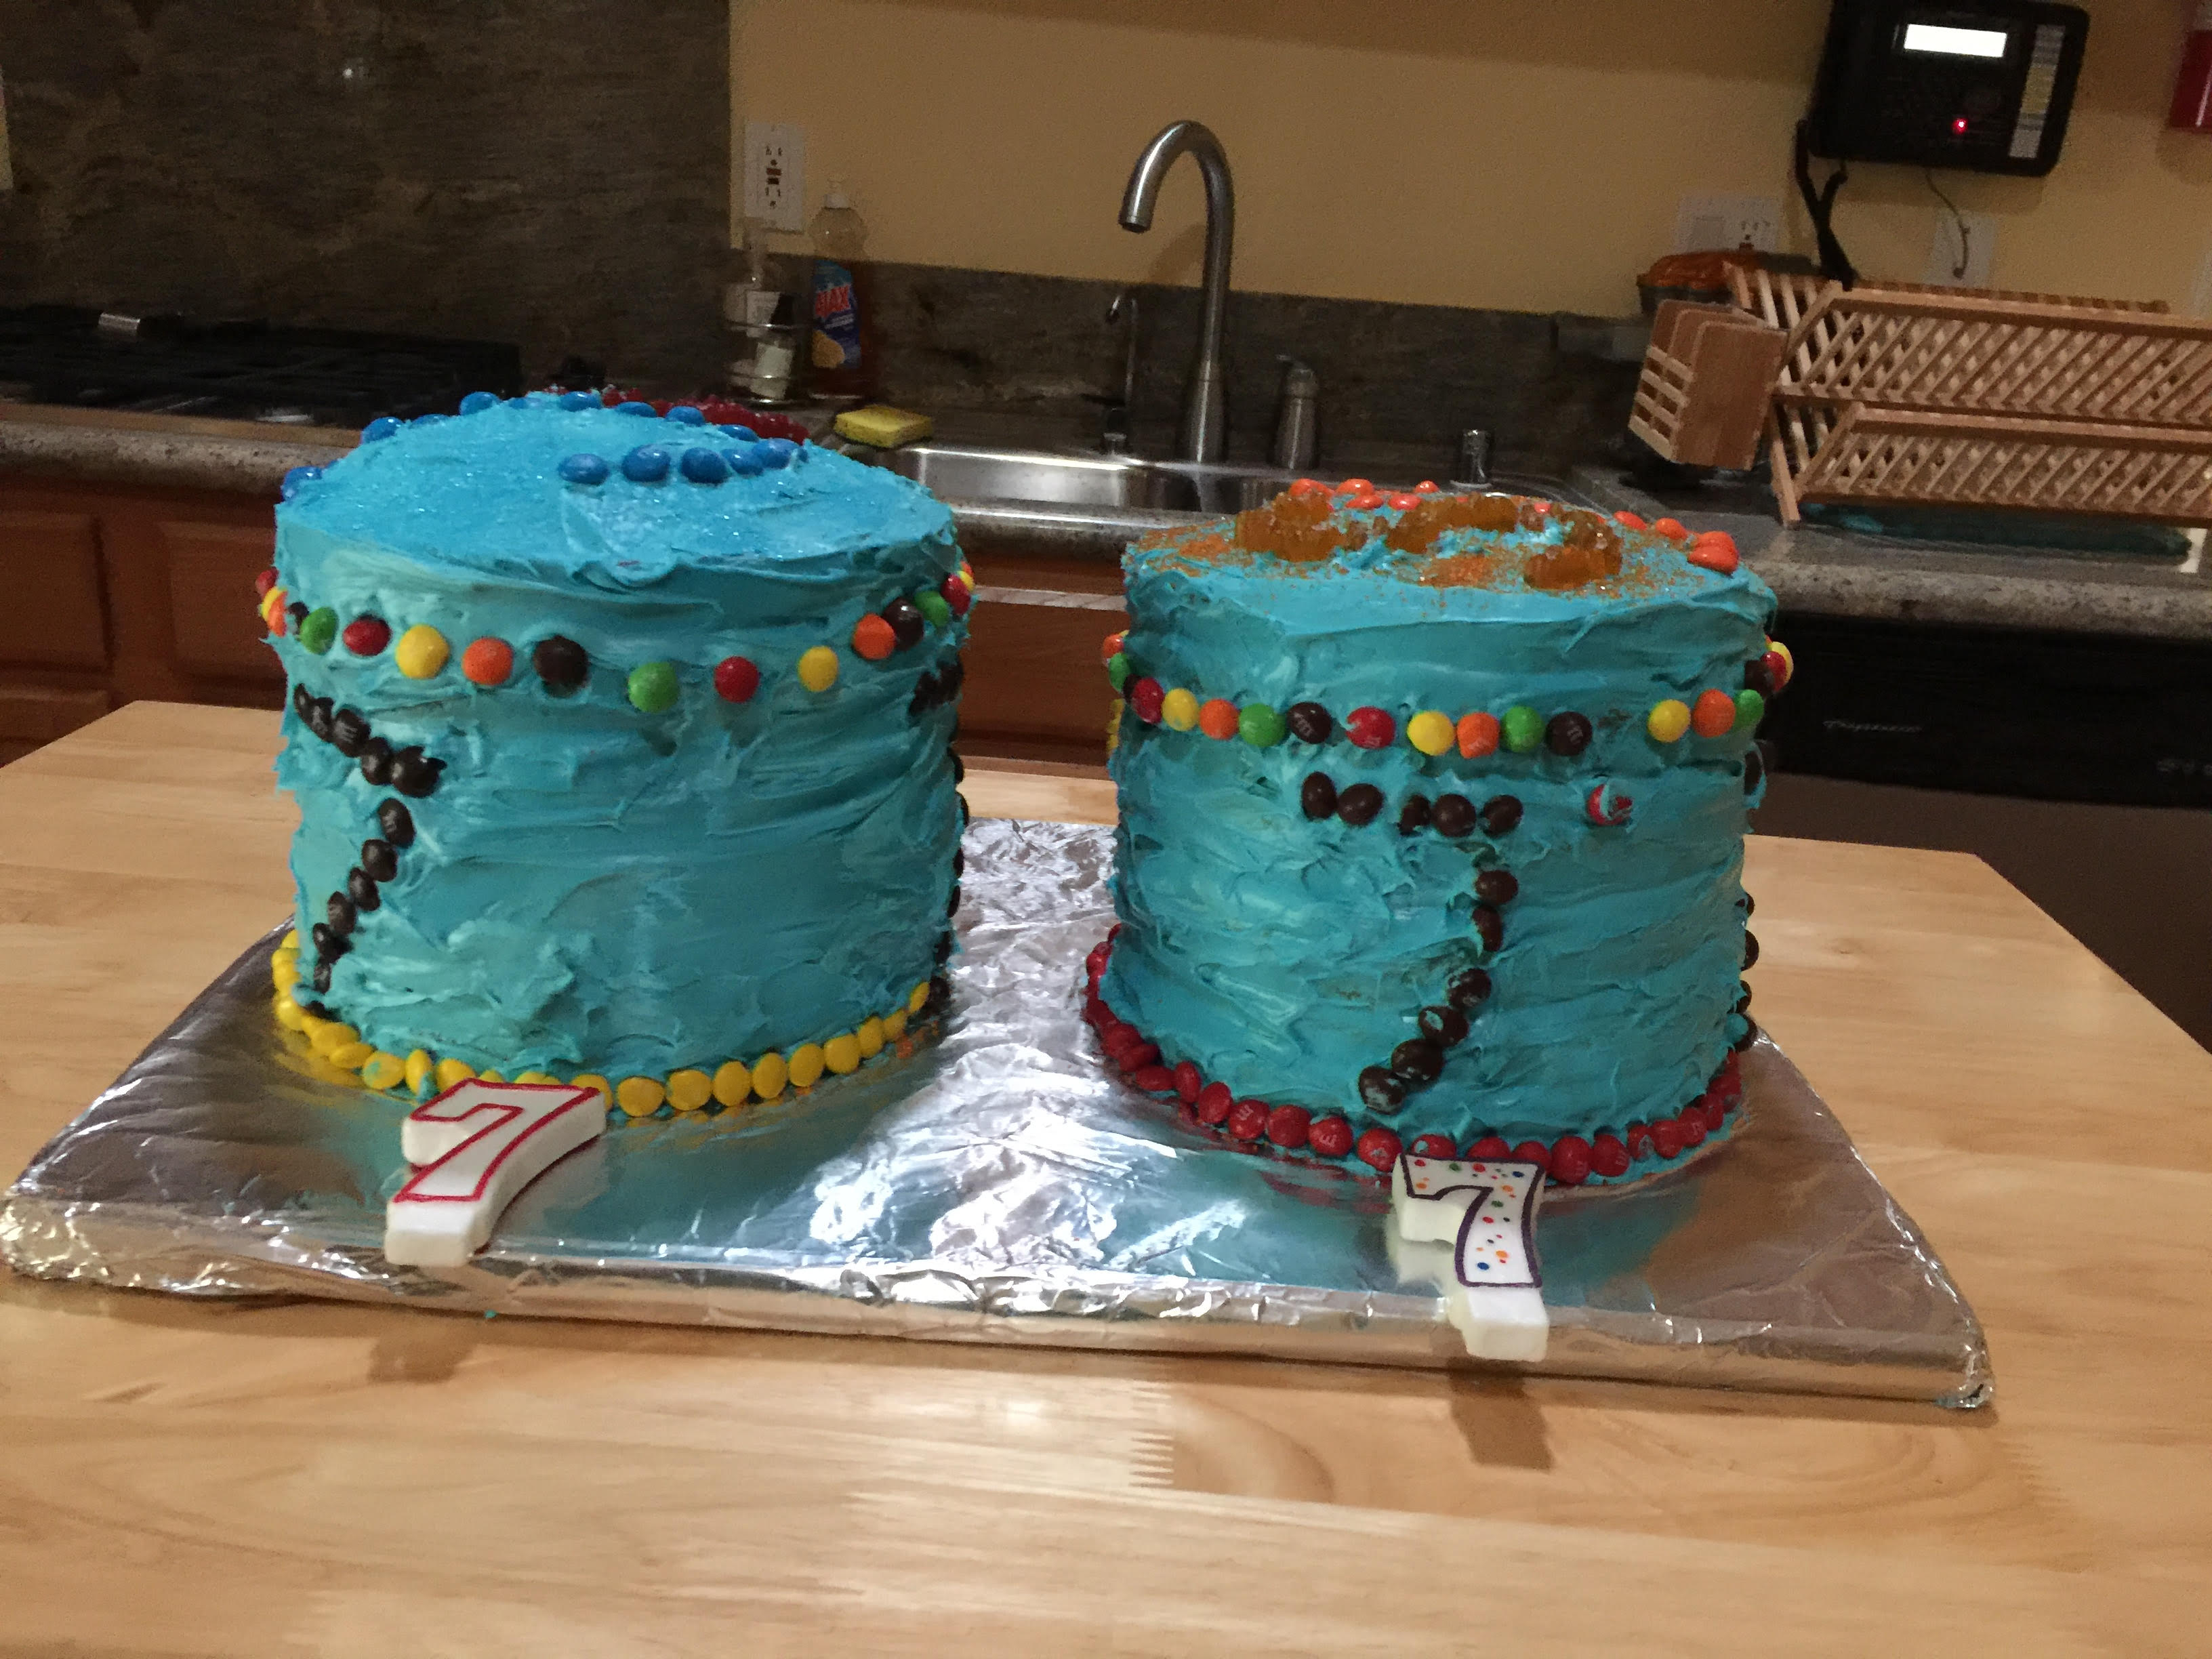 Jonah Rainbow cakes complete 2 -2016 7th bdat